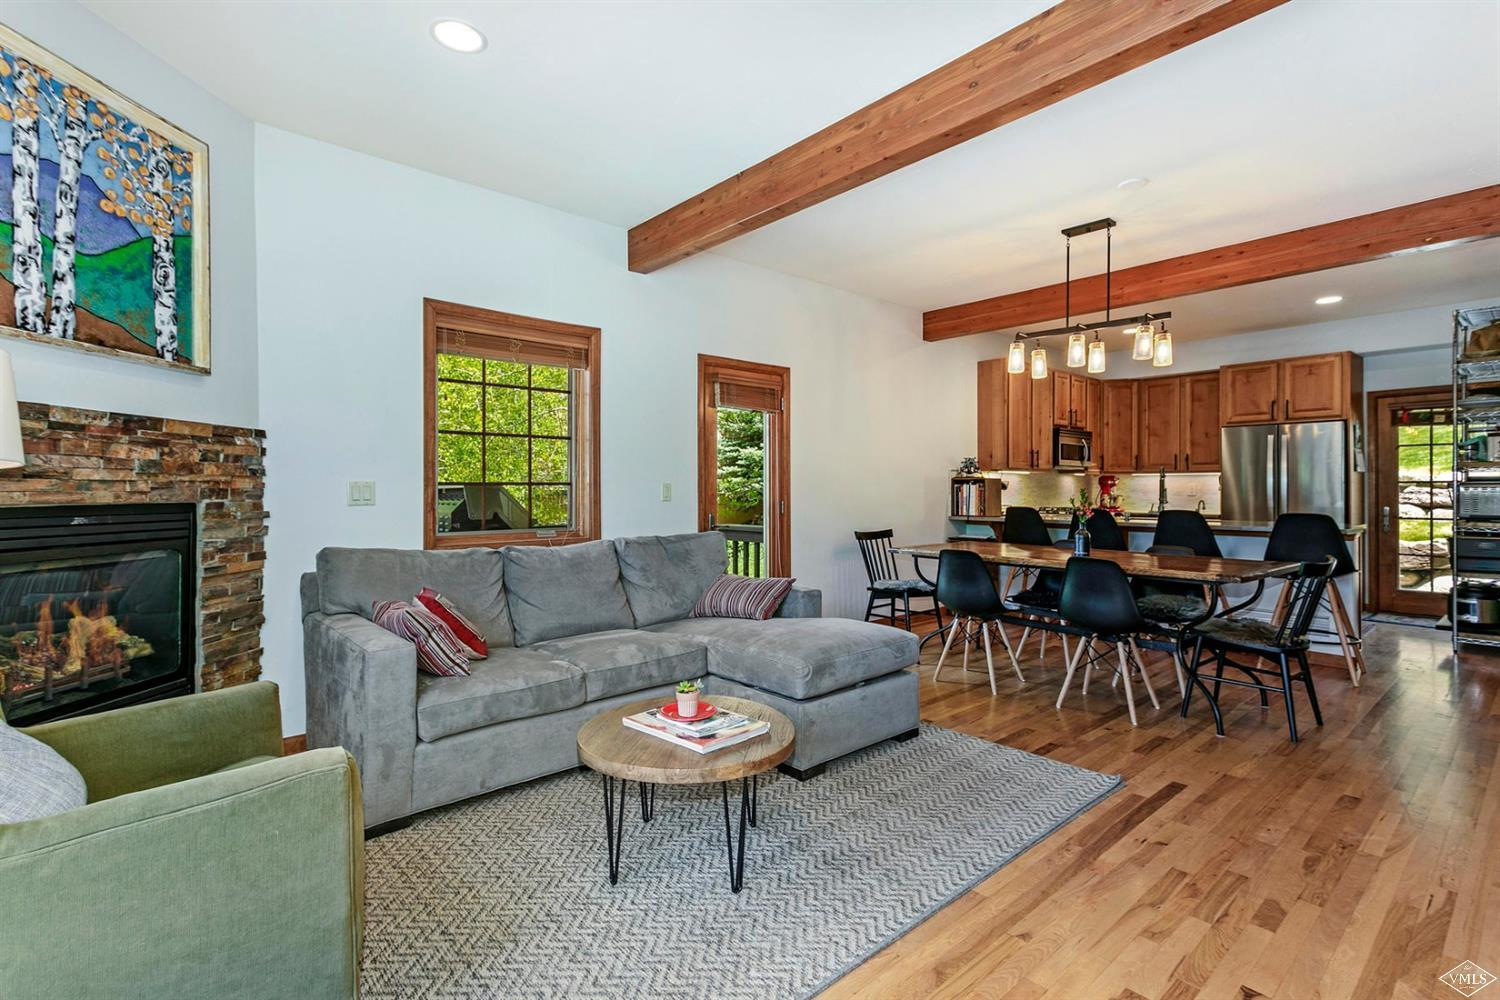 Wonderfully located end-unit 3-bedroom townhome in downtown Minturn. This home offers views, new water heater, one-car garage plus additional surface parking and living space that accommodates a dining table. The unique 3- level floor plan offers a bedroom on the entry level and the living area features 2 decks, a yard and remodeled kitchen with new appliances. An ideal layout for roommates. Recent upgrades to the building include new roofs, insulation, heat tape and gutters.